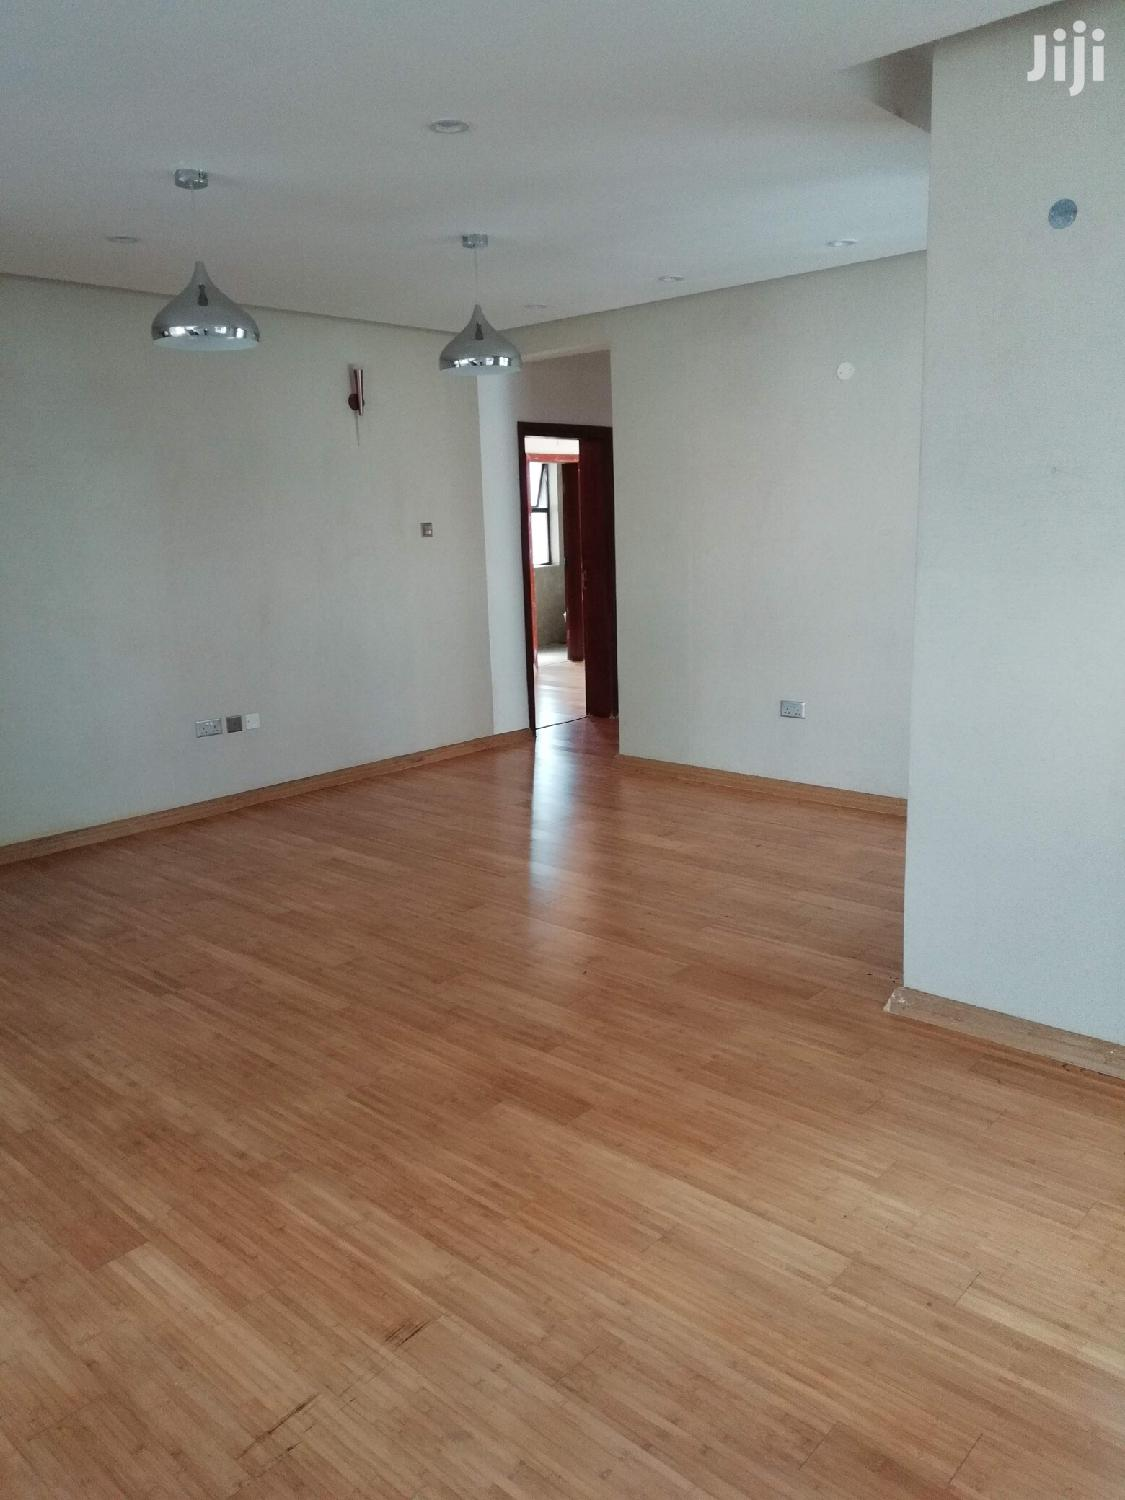 Elegant;5brs+Dsq Town Hse With Garden And Very Secure | Houses & Apartments For Rent for sale in Lavington, Nairobi, Kenya